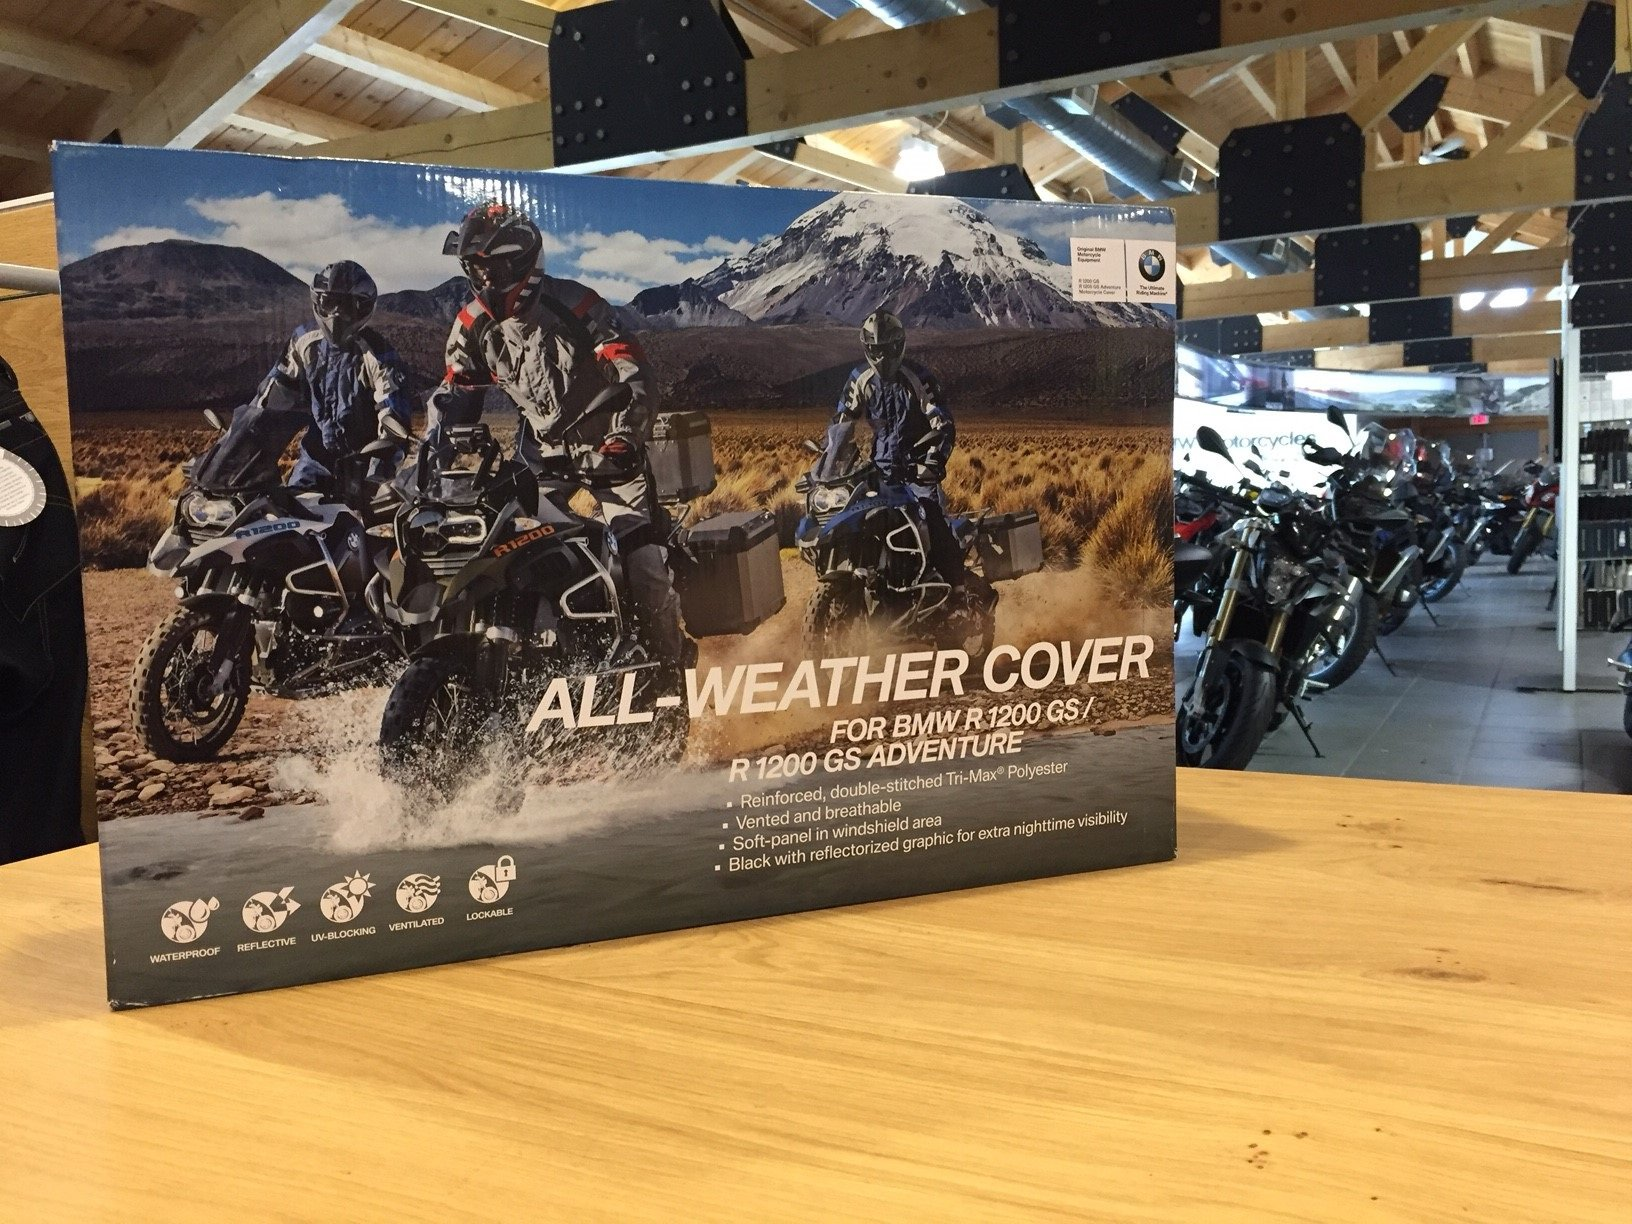 Bmw All-Weather Cover for R1200GS/GS Adventure by BMW